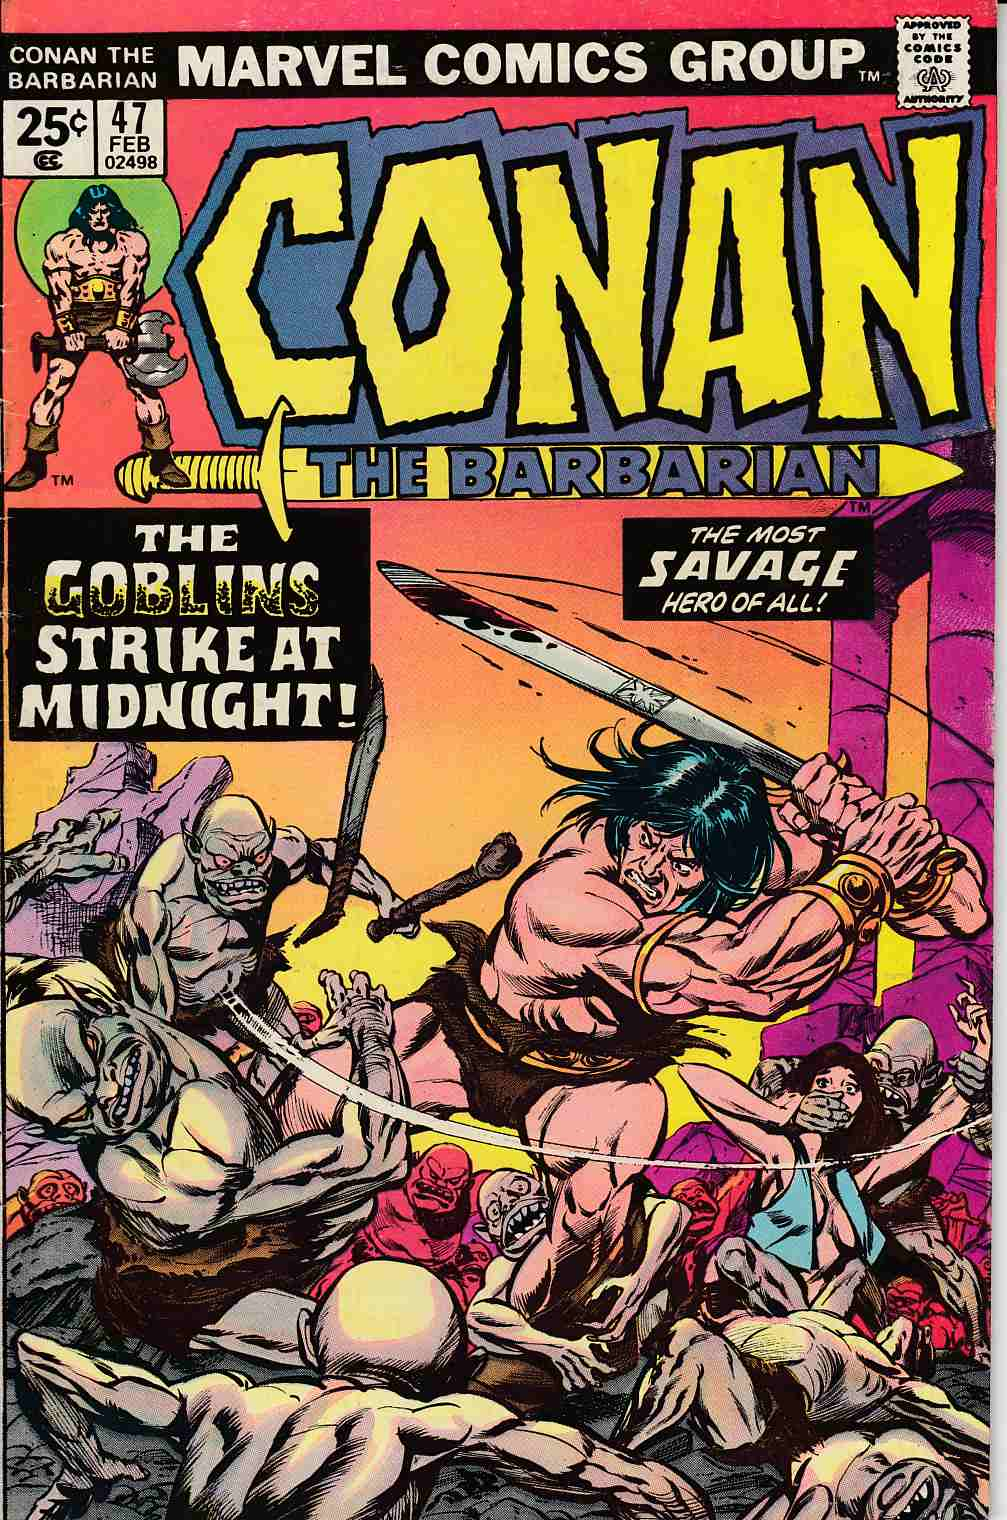 Conan the Barbarian #47 Fine Plus (6.5) [Marvel Comic] LARGE